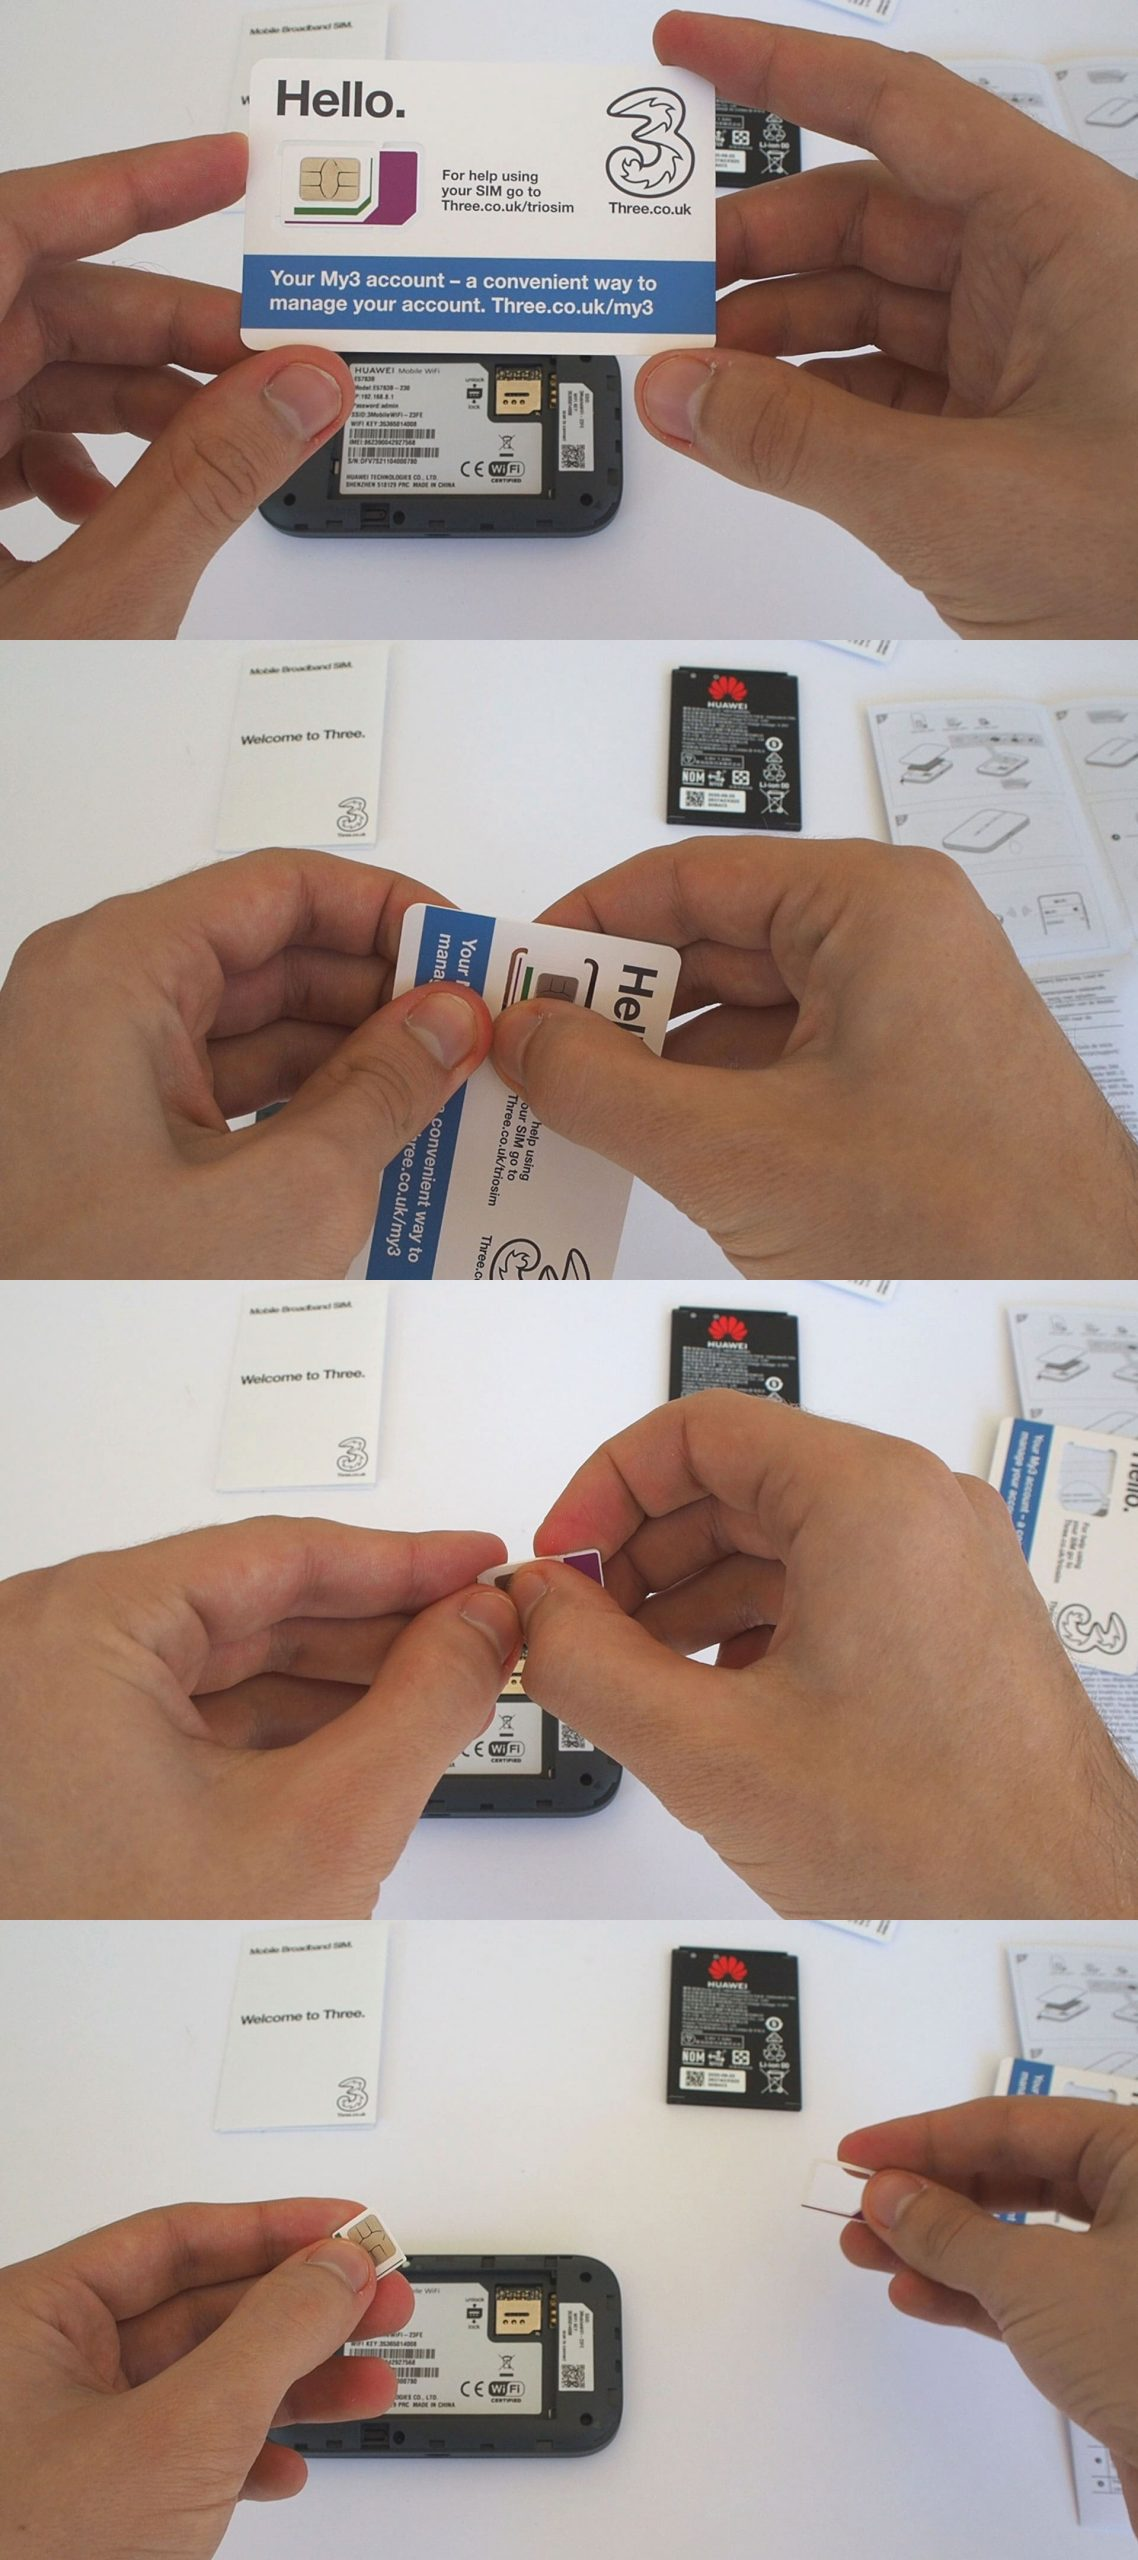 Getting the Three MiFi SIM card out of its packaging.